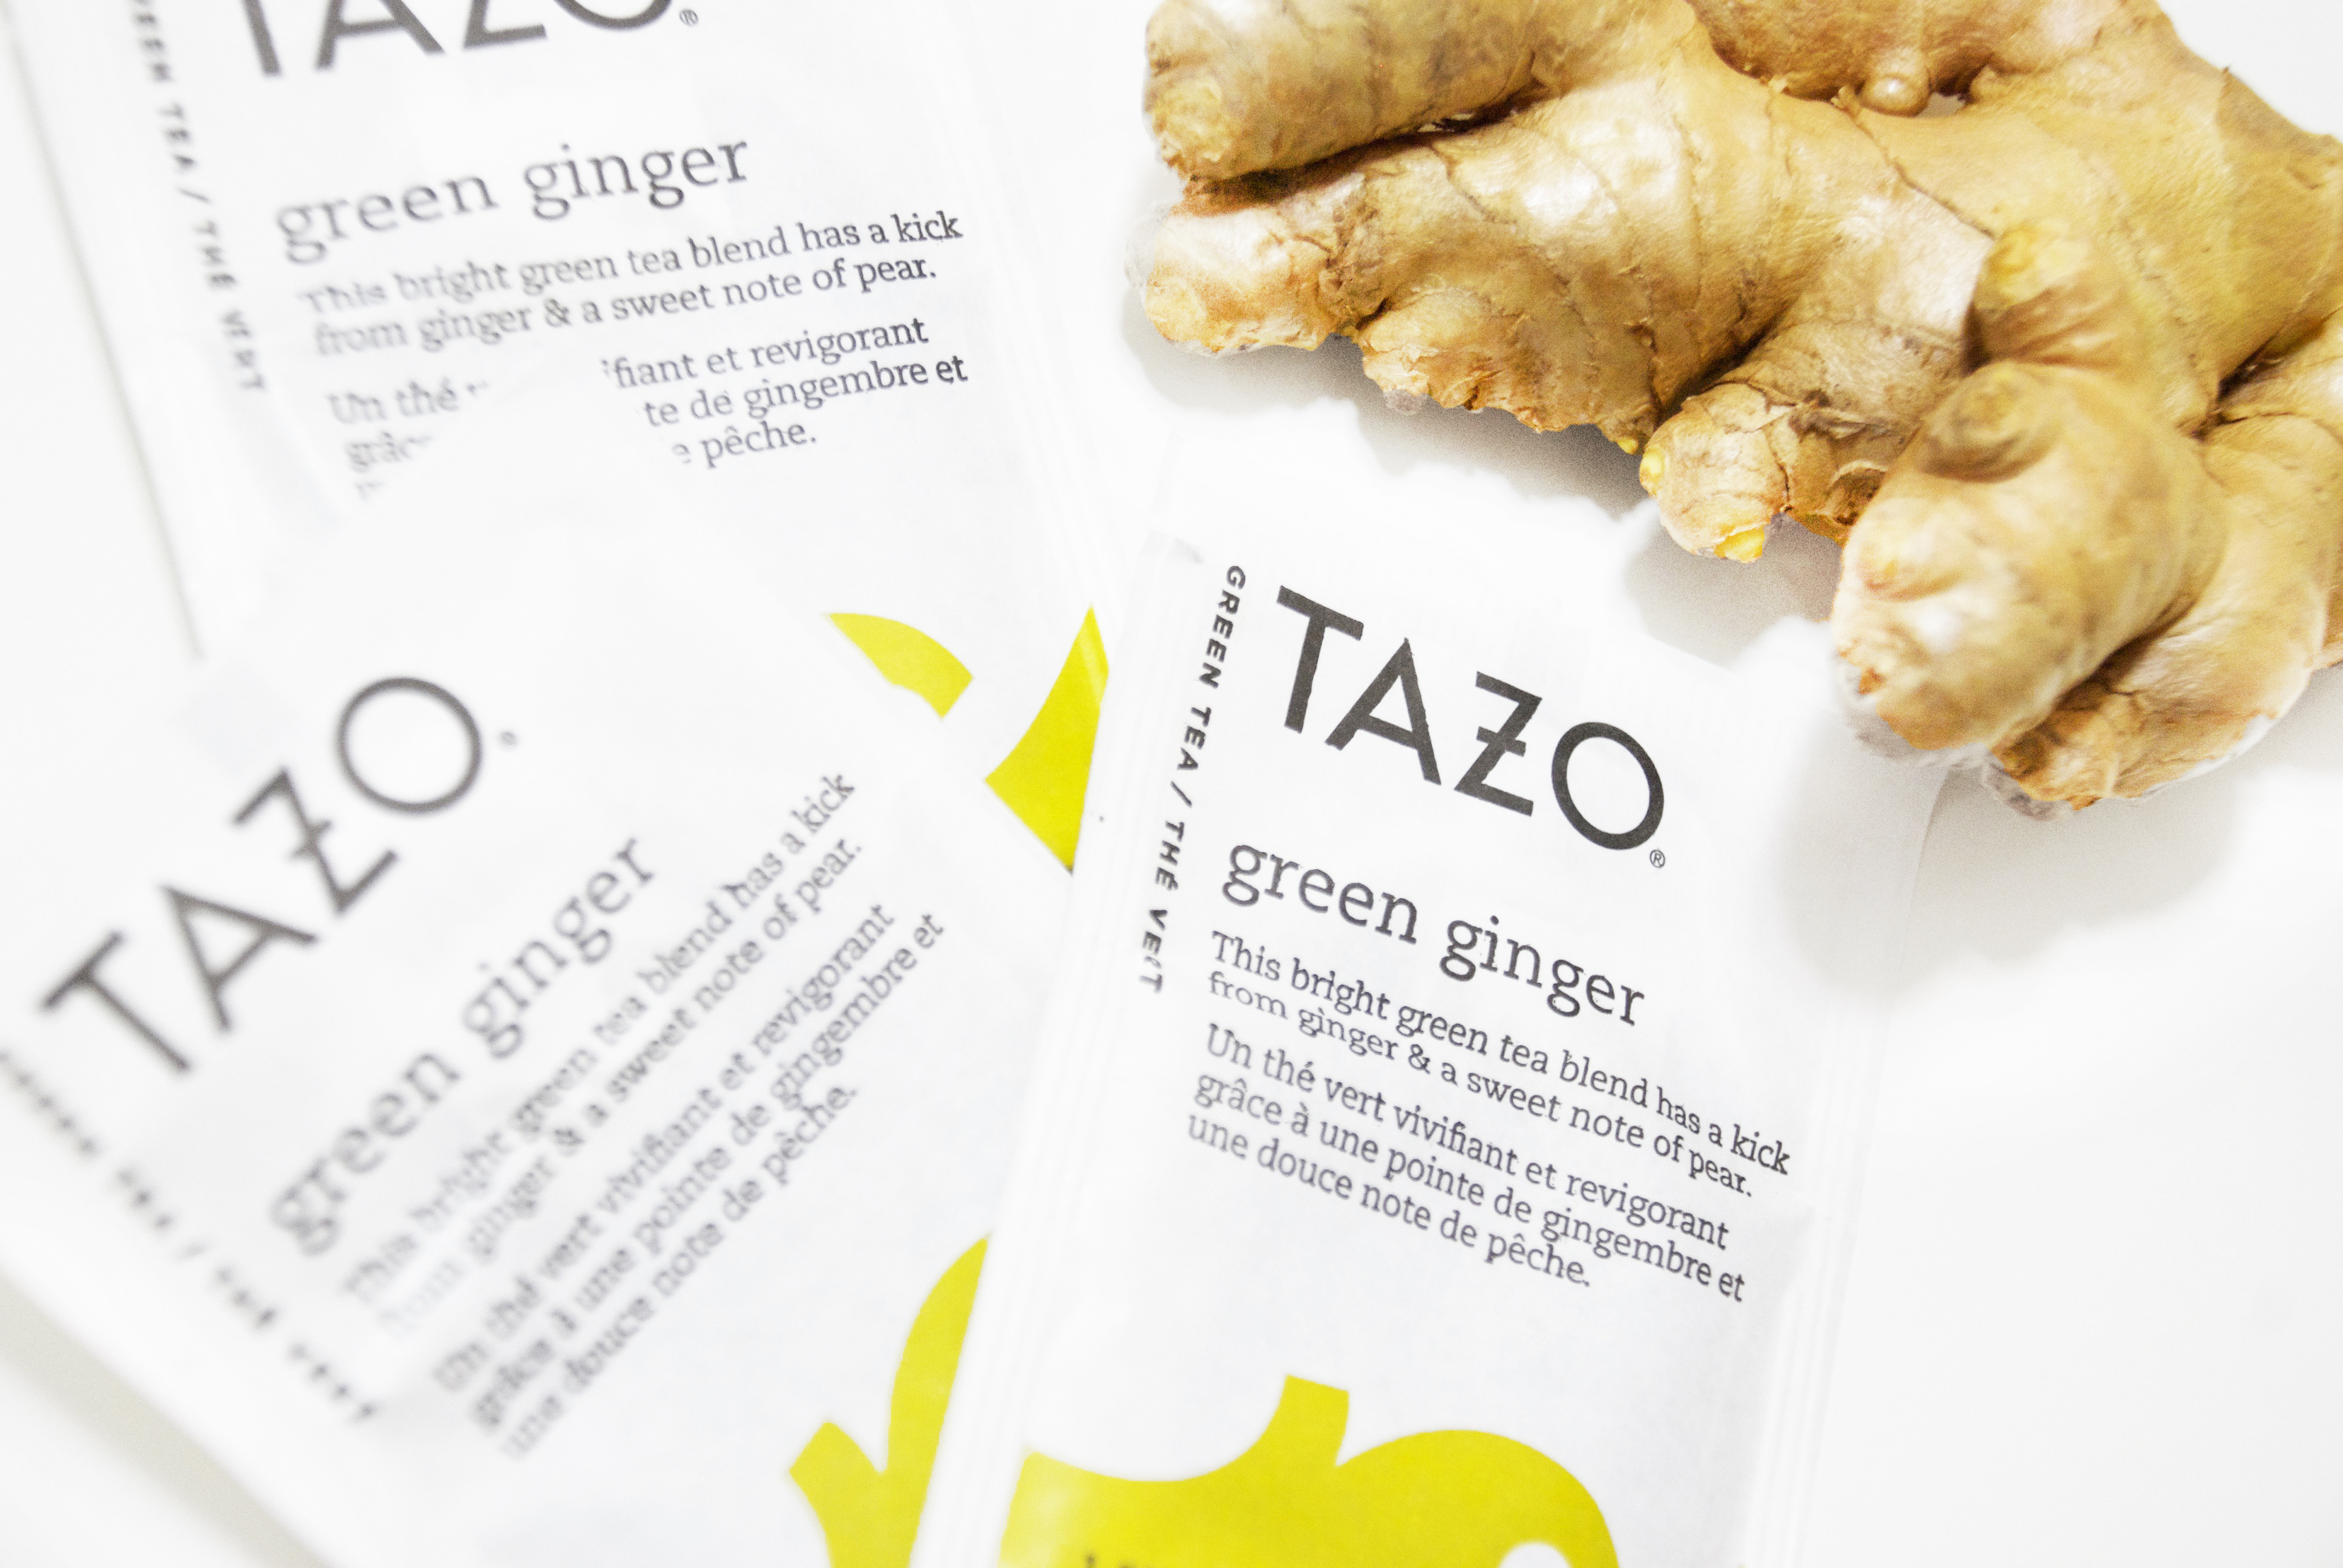 TAZO green ginger tea packets with ginger root